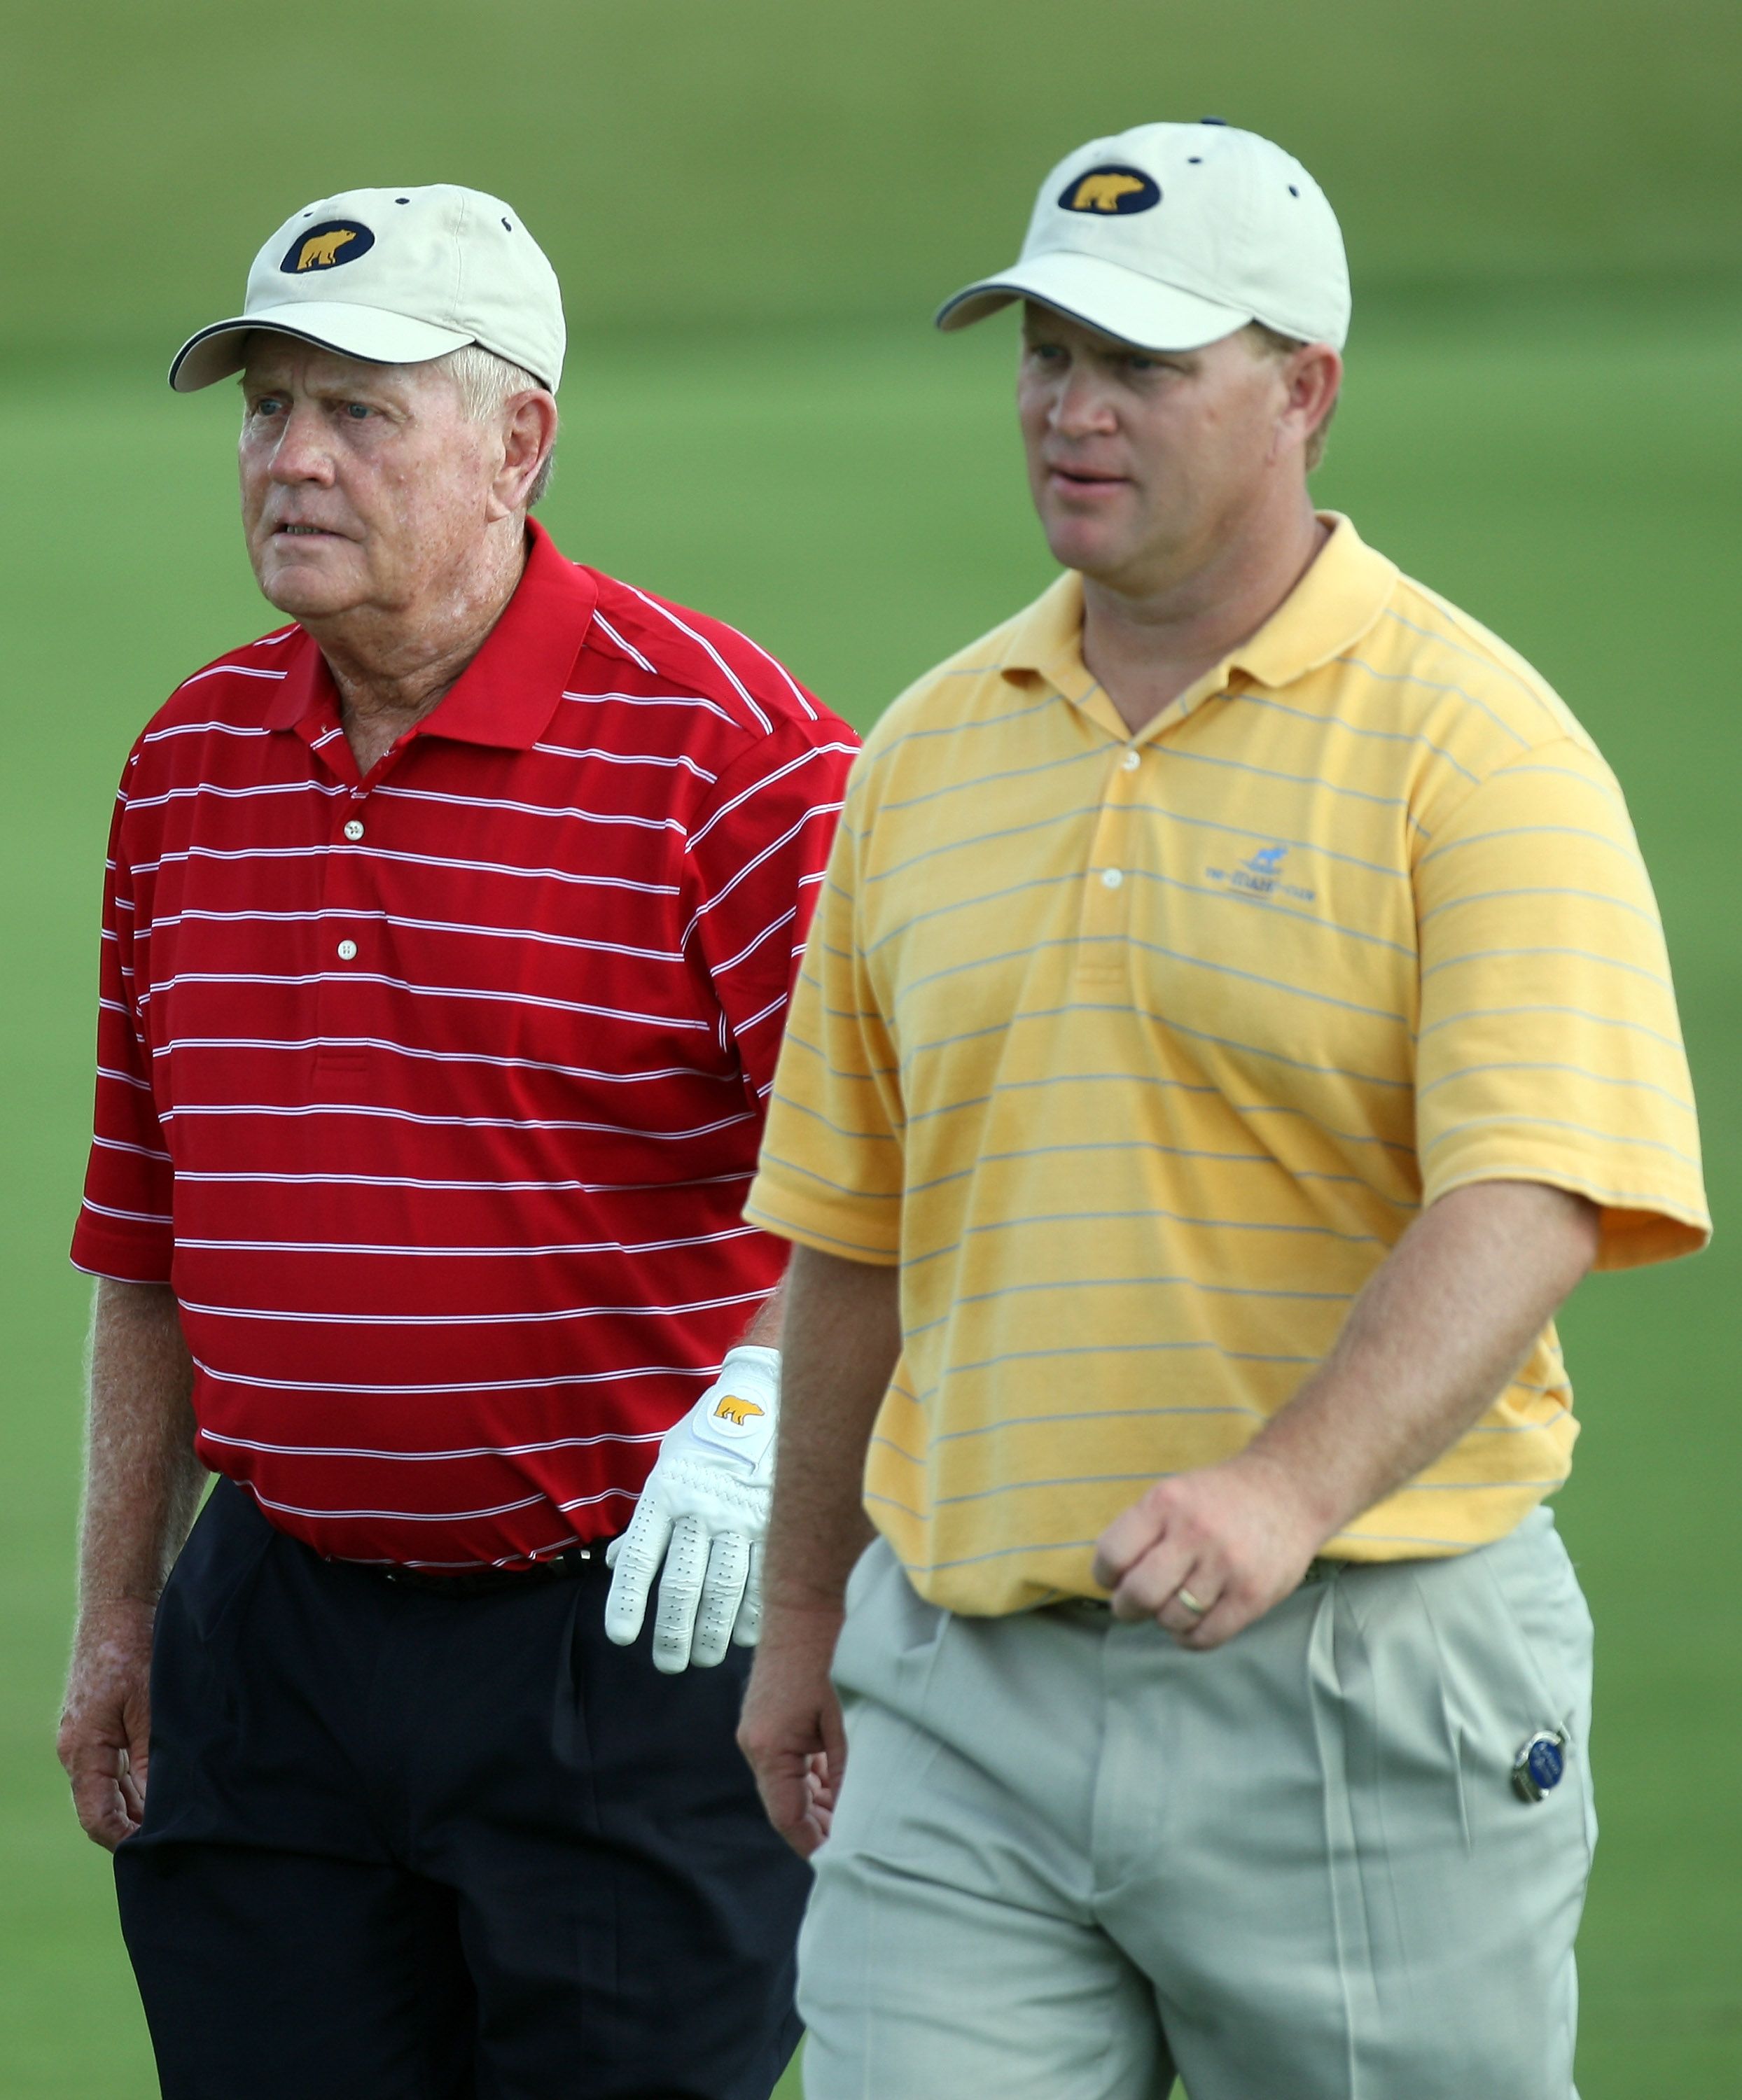 CHAMPIONS GATE, FLORIDA - DECEMBER 02:  Gary Nicklaus and his father Jack Nicklaus play the 10th hole during the final round of the 2007 Del Webb Father Son Challenge on the International Course at Champions Gate Golf Club, on December 2, 2007 in Champion